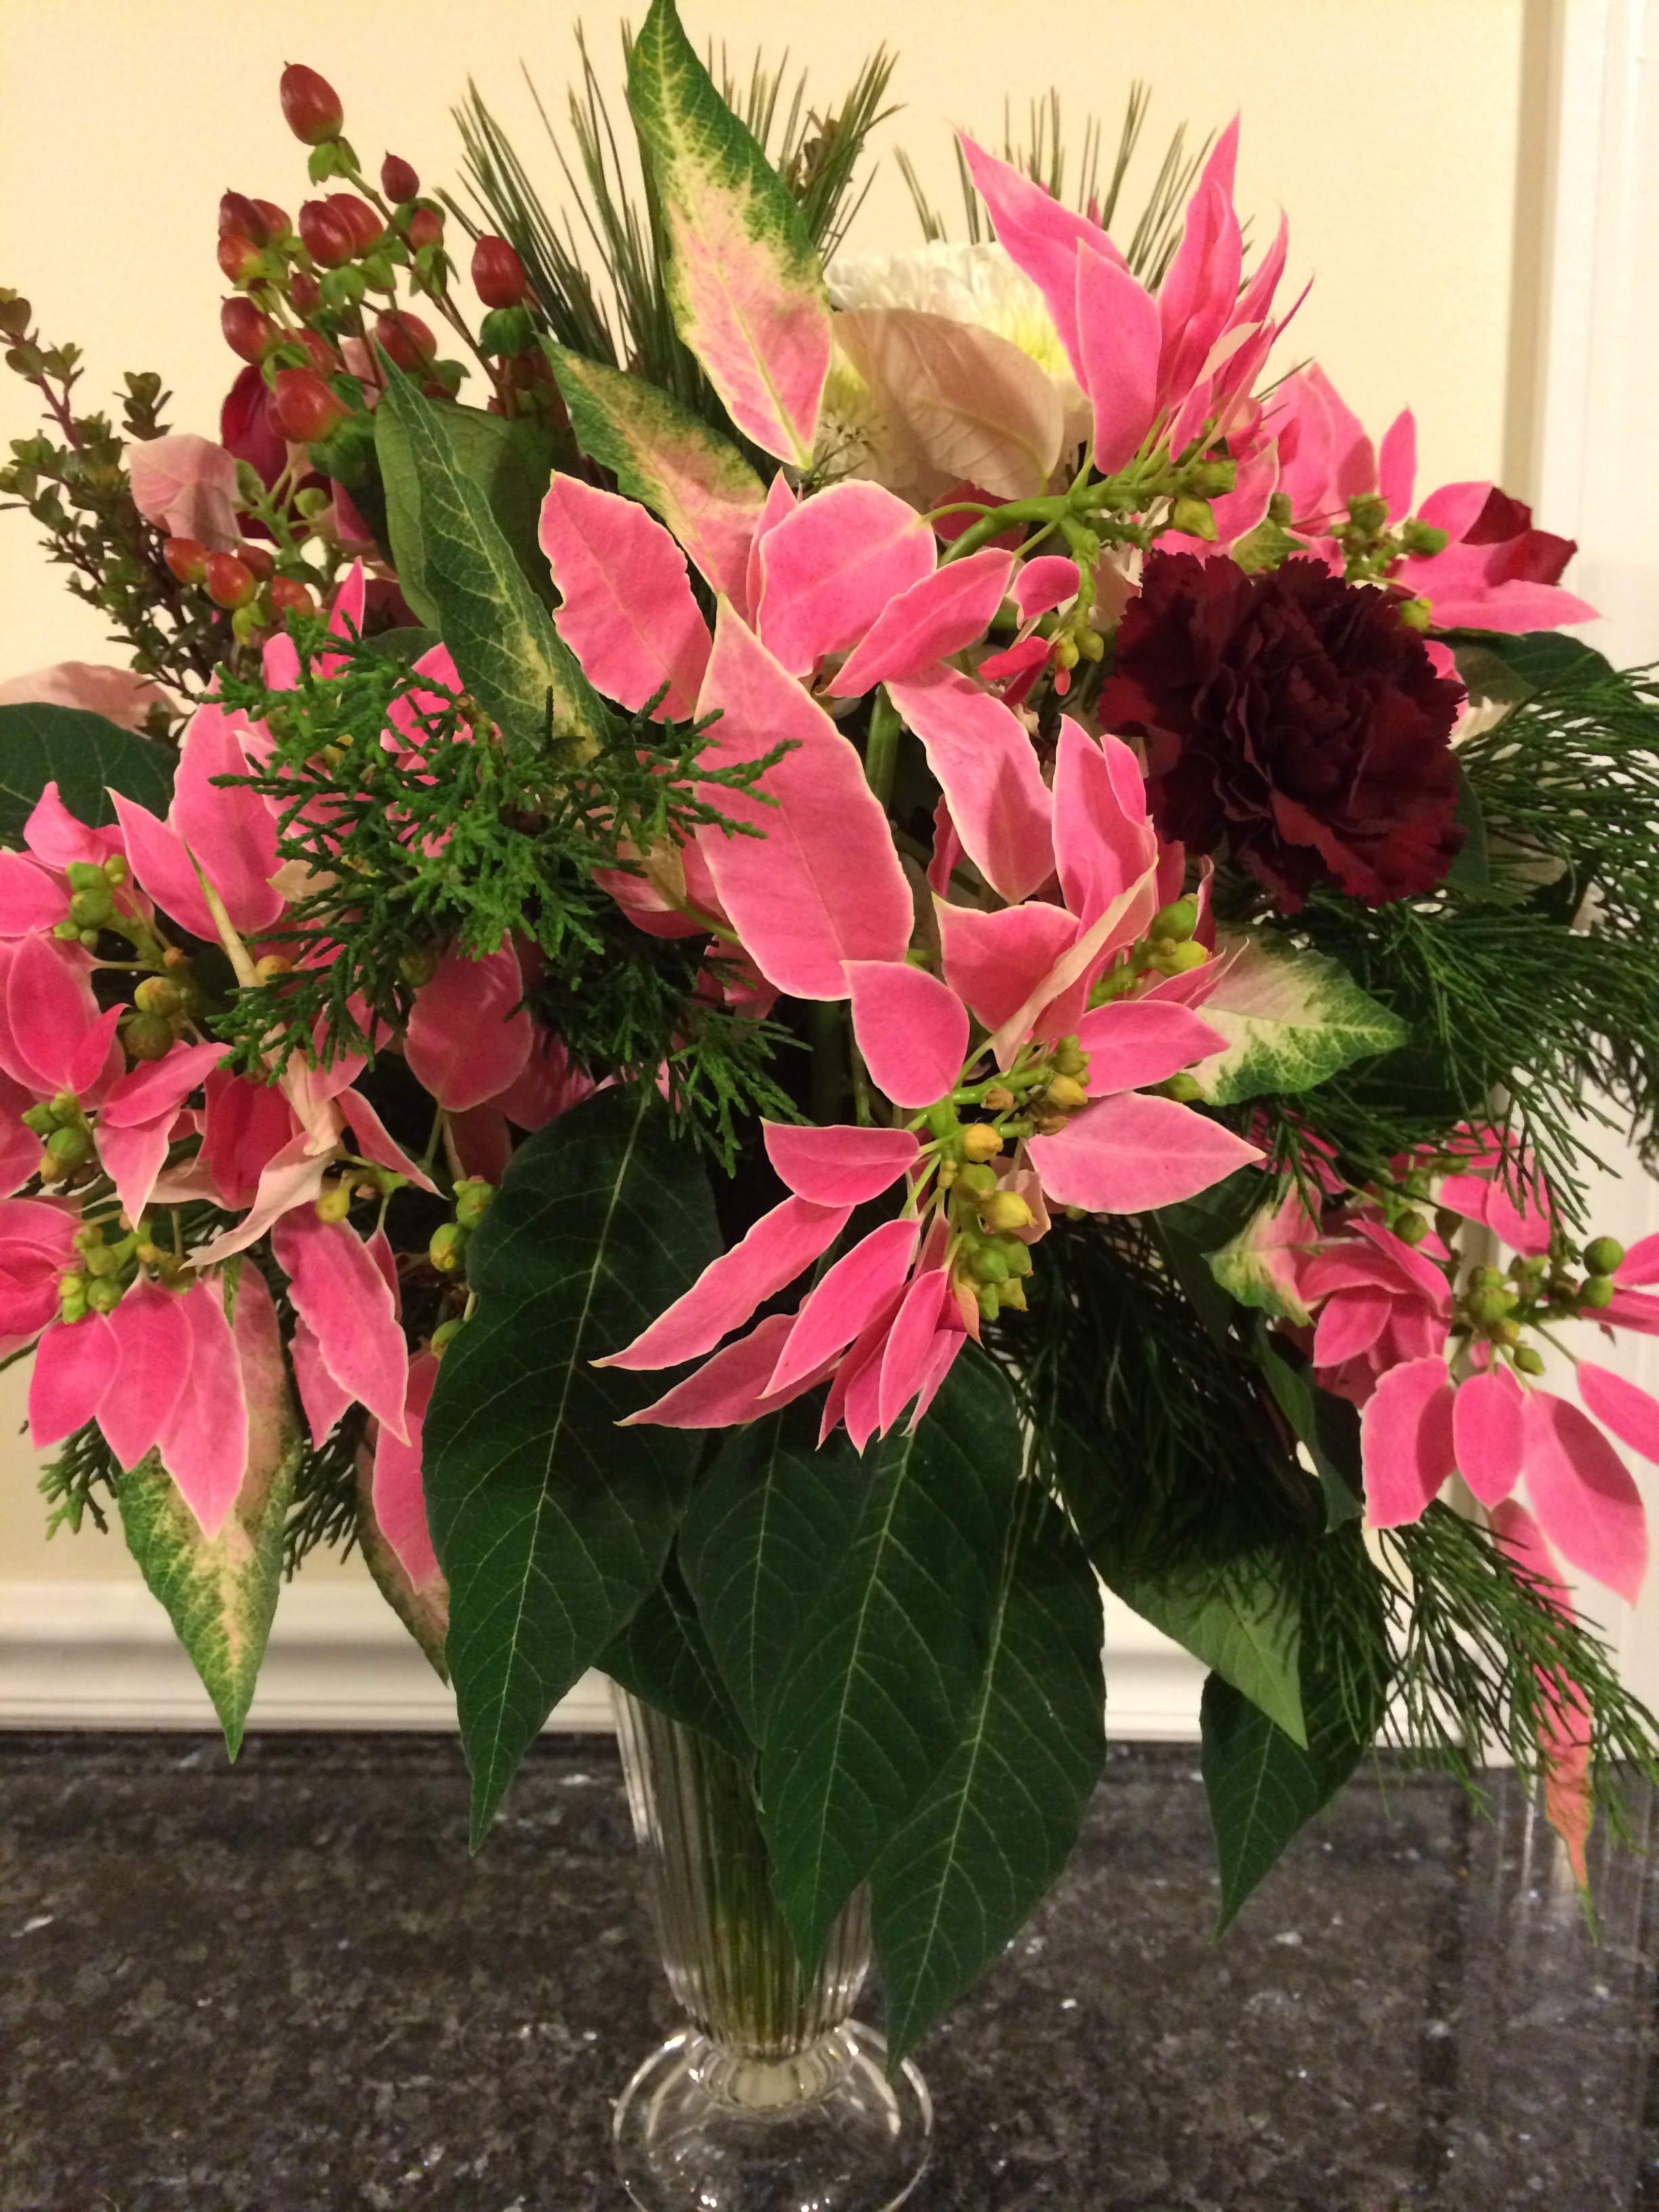 Poinsettia - History and Legends - The Garden Diaries